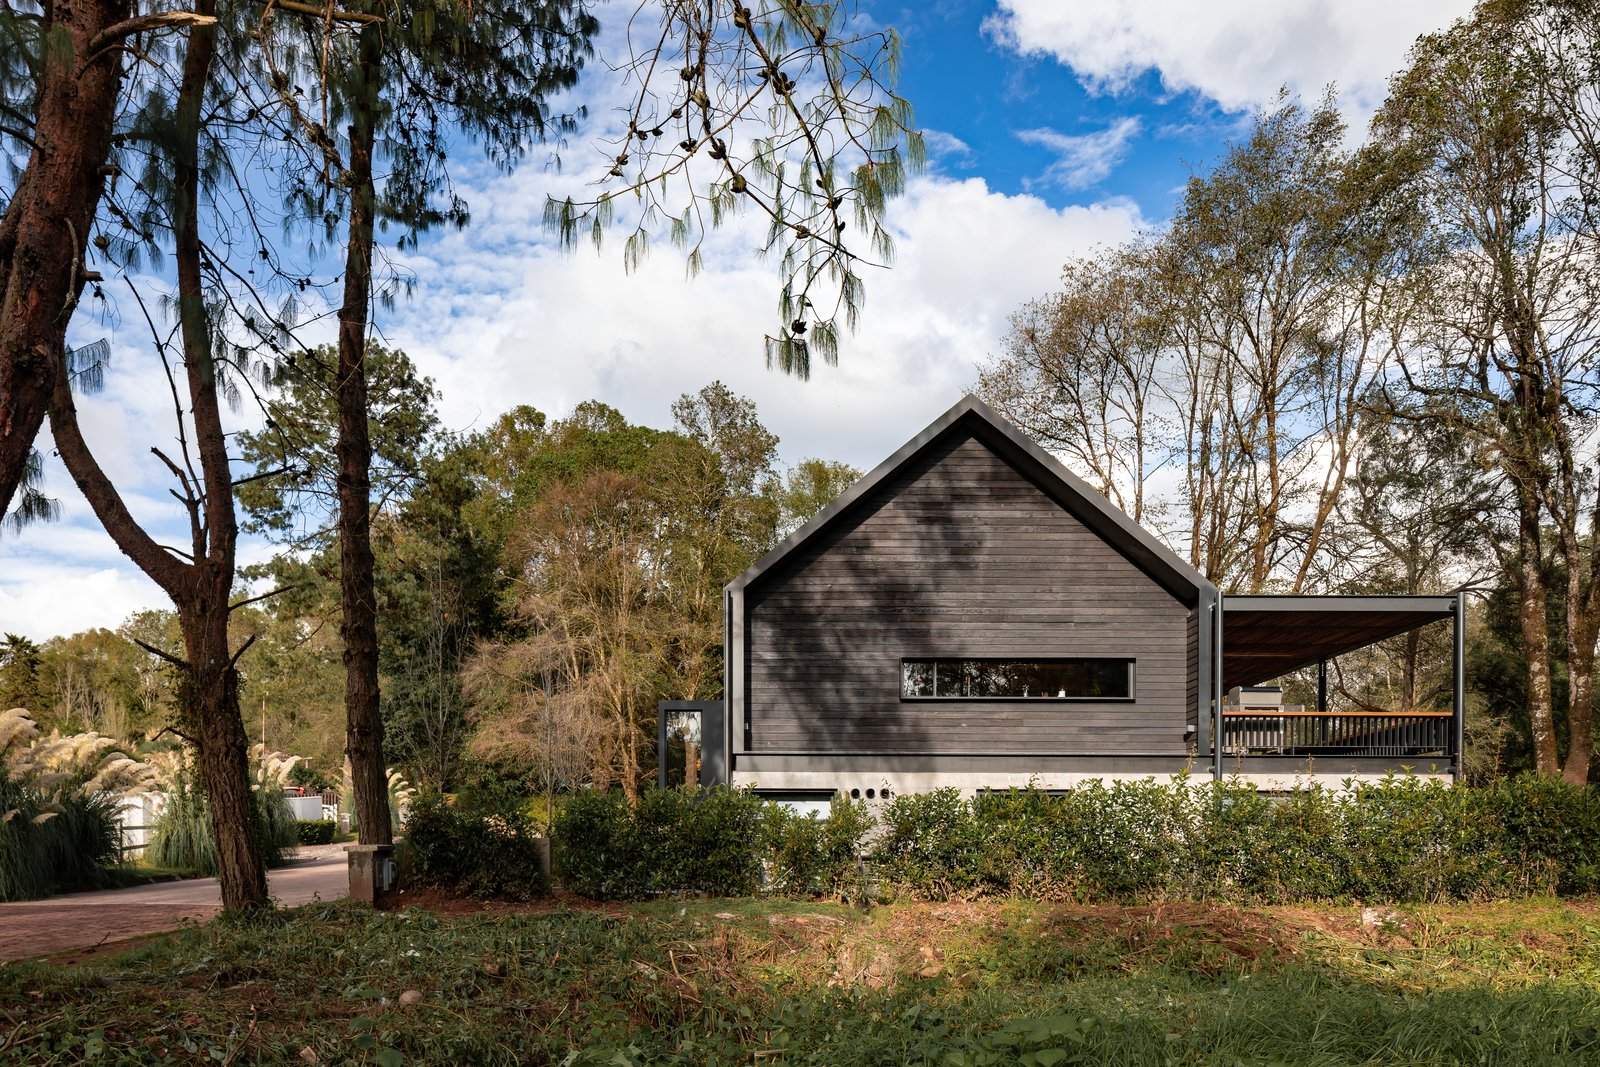 Exterior, House Building Type, A-Frame RoofLine, Tile Roof Material, Concrete Siding Material, Metal Siding Material, Shingles Roof Material, and Cabin Building Type  L7 Home by Augusto Fernandez